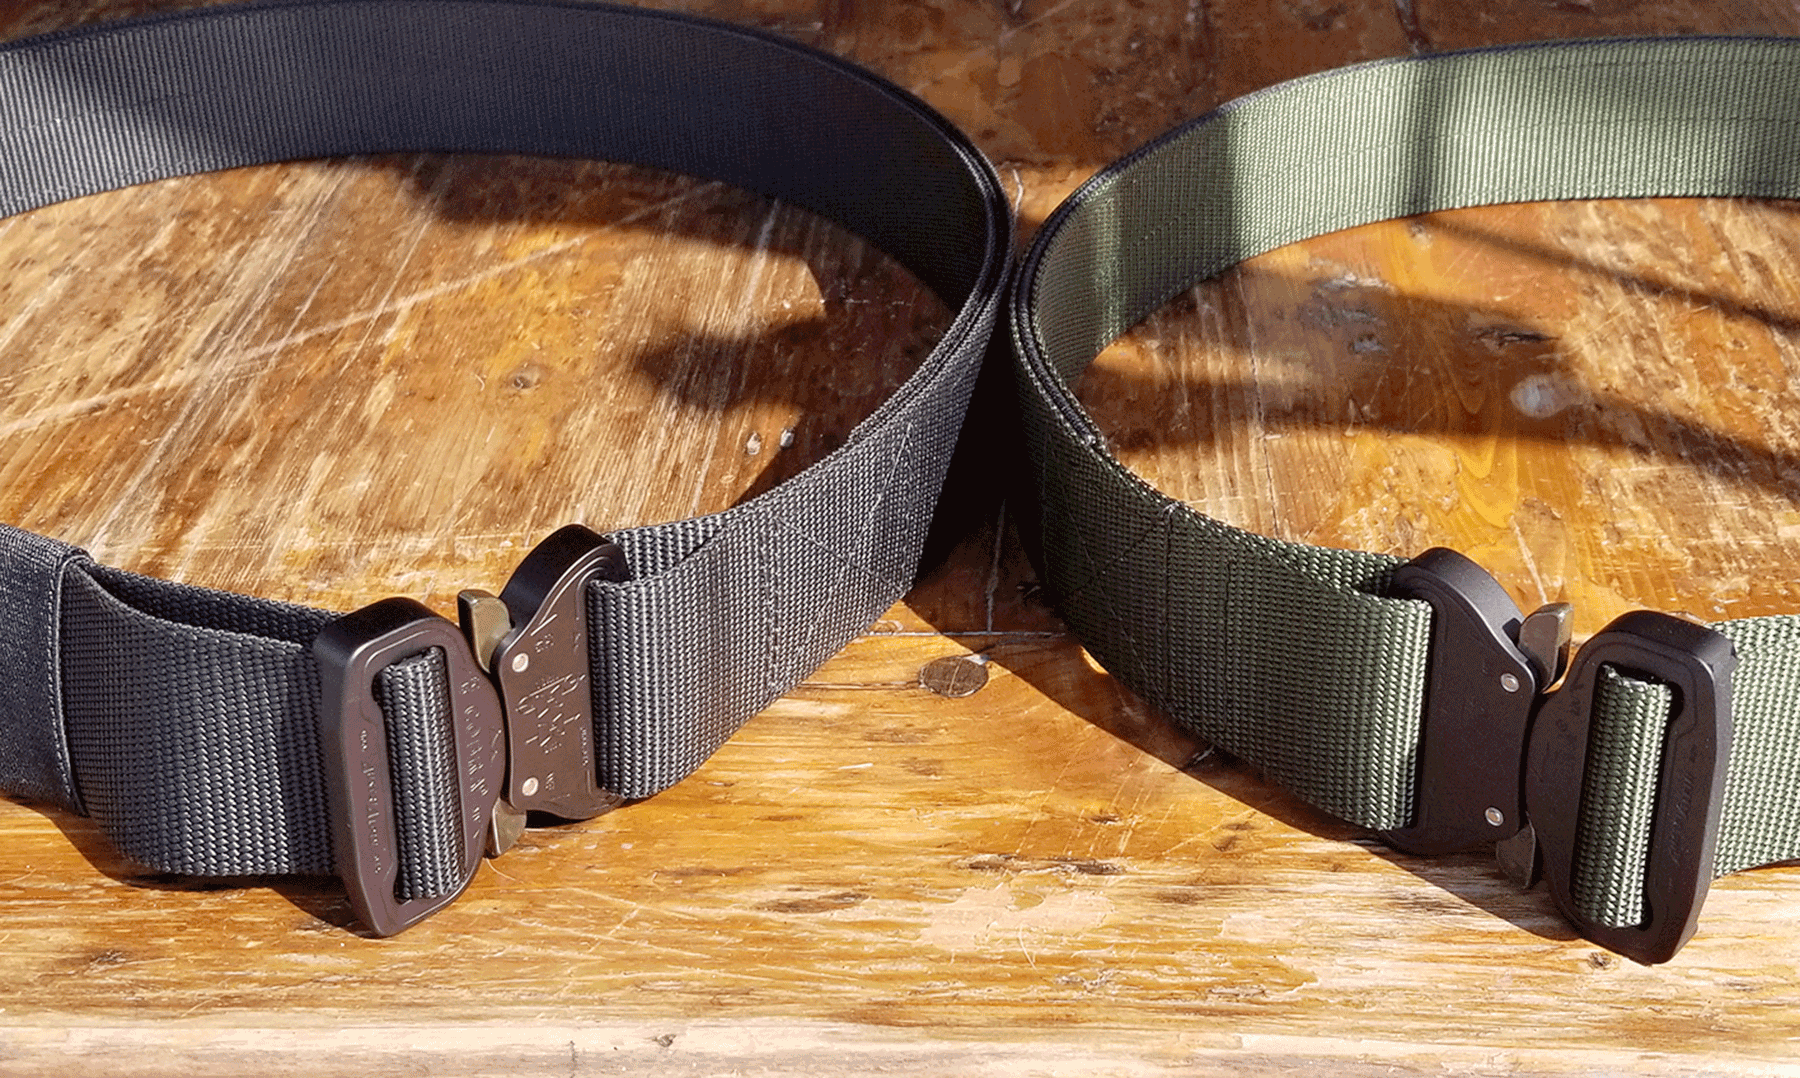 Klik Belts (Tactical Duty Belts) Review